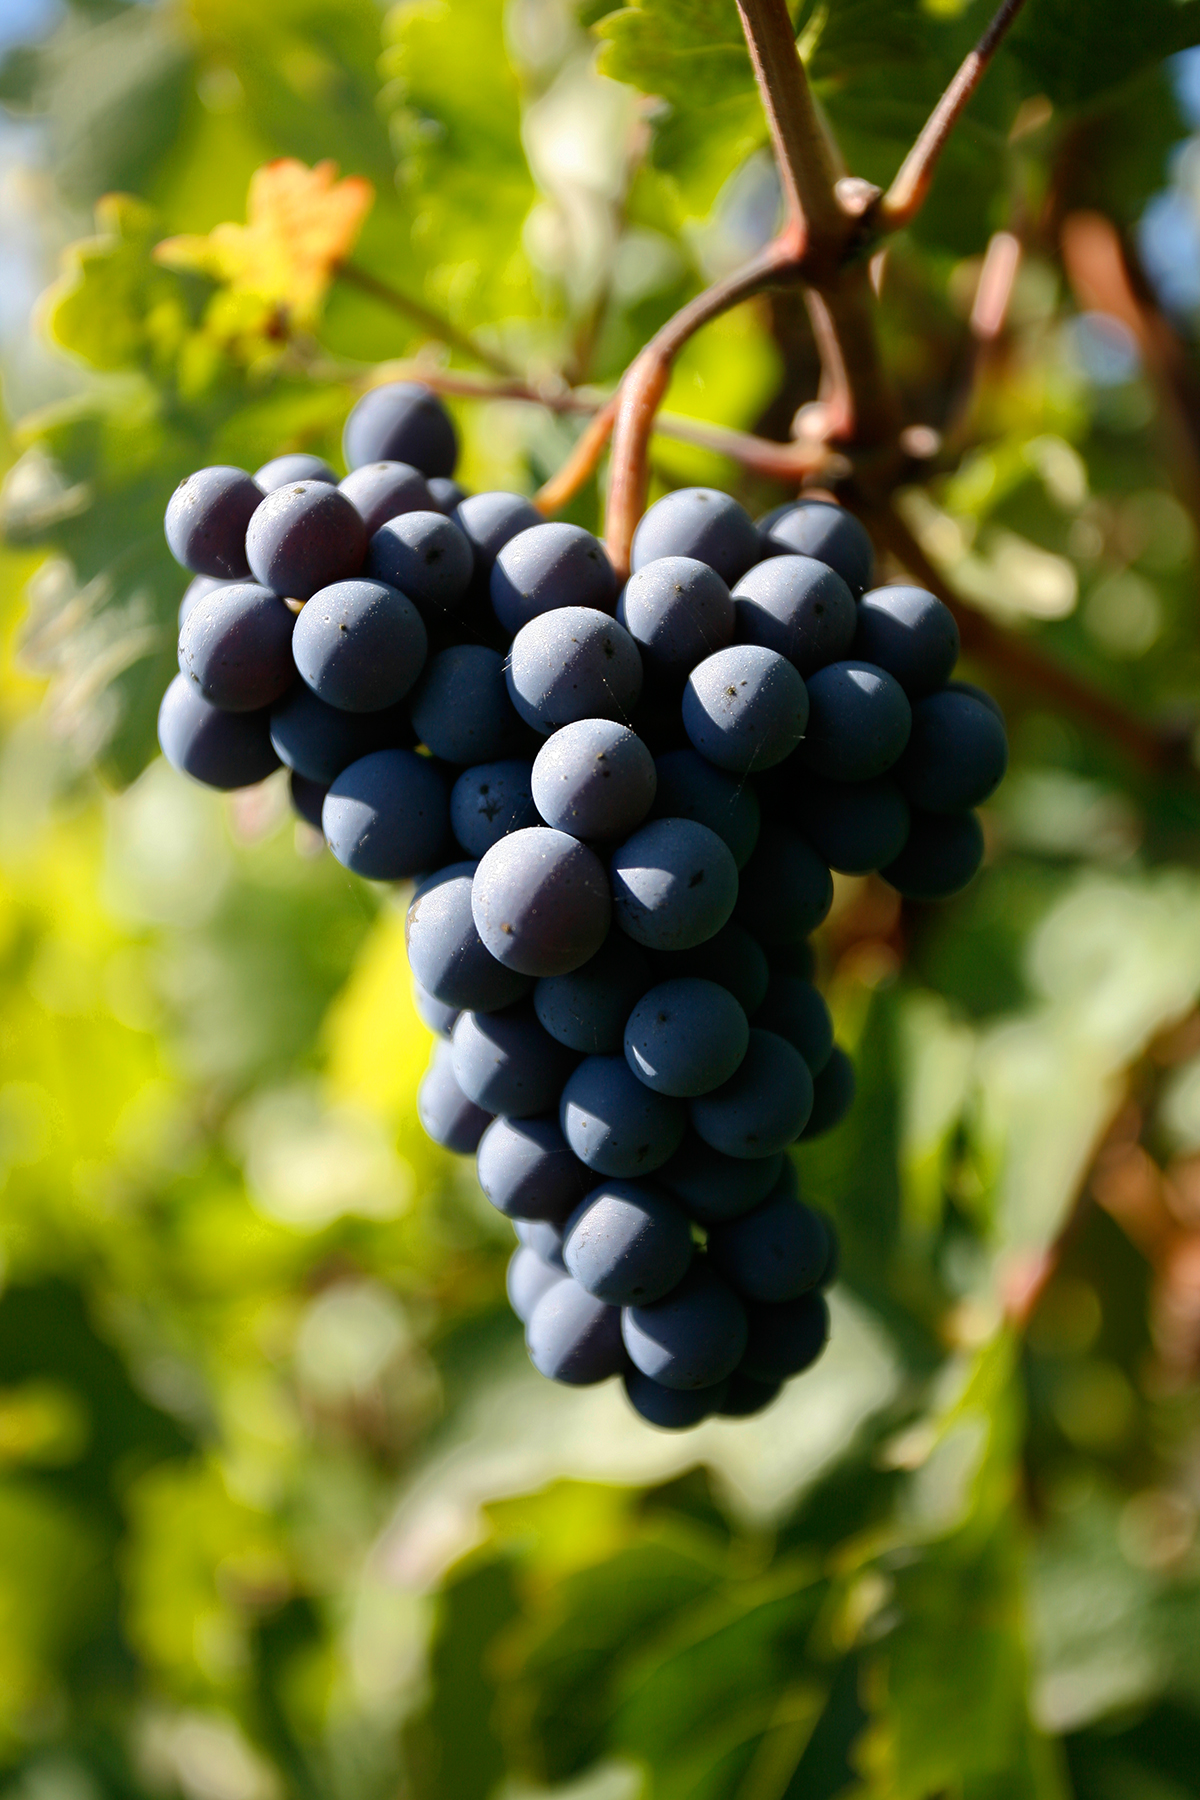 WINE-GRAPES-ON-THE-VINE-VINYARD-NAPA-VALLEY-JONATHAN-BECKERMAN-PHOTOGRAPY_003.jpg